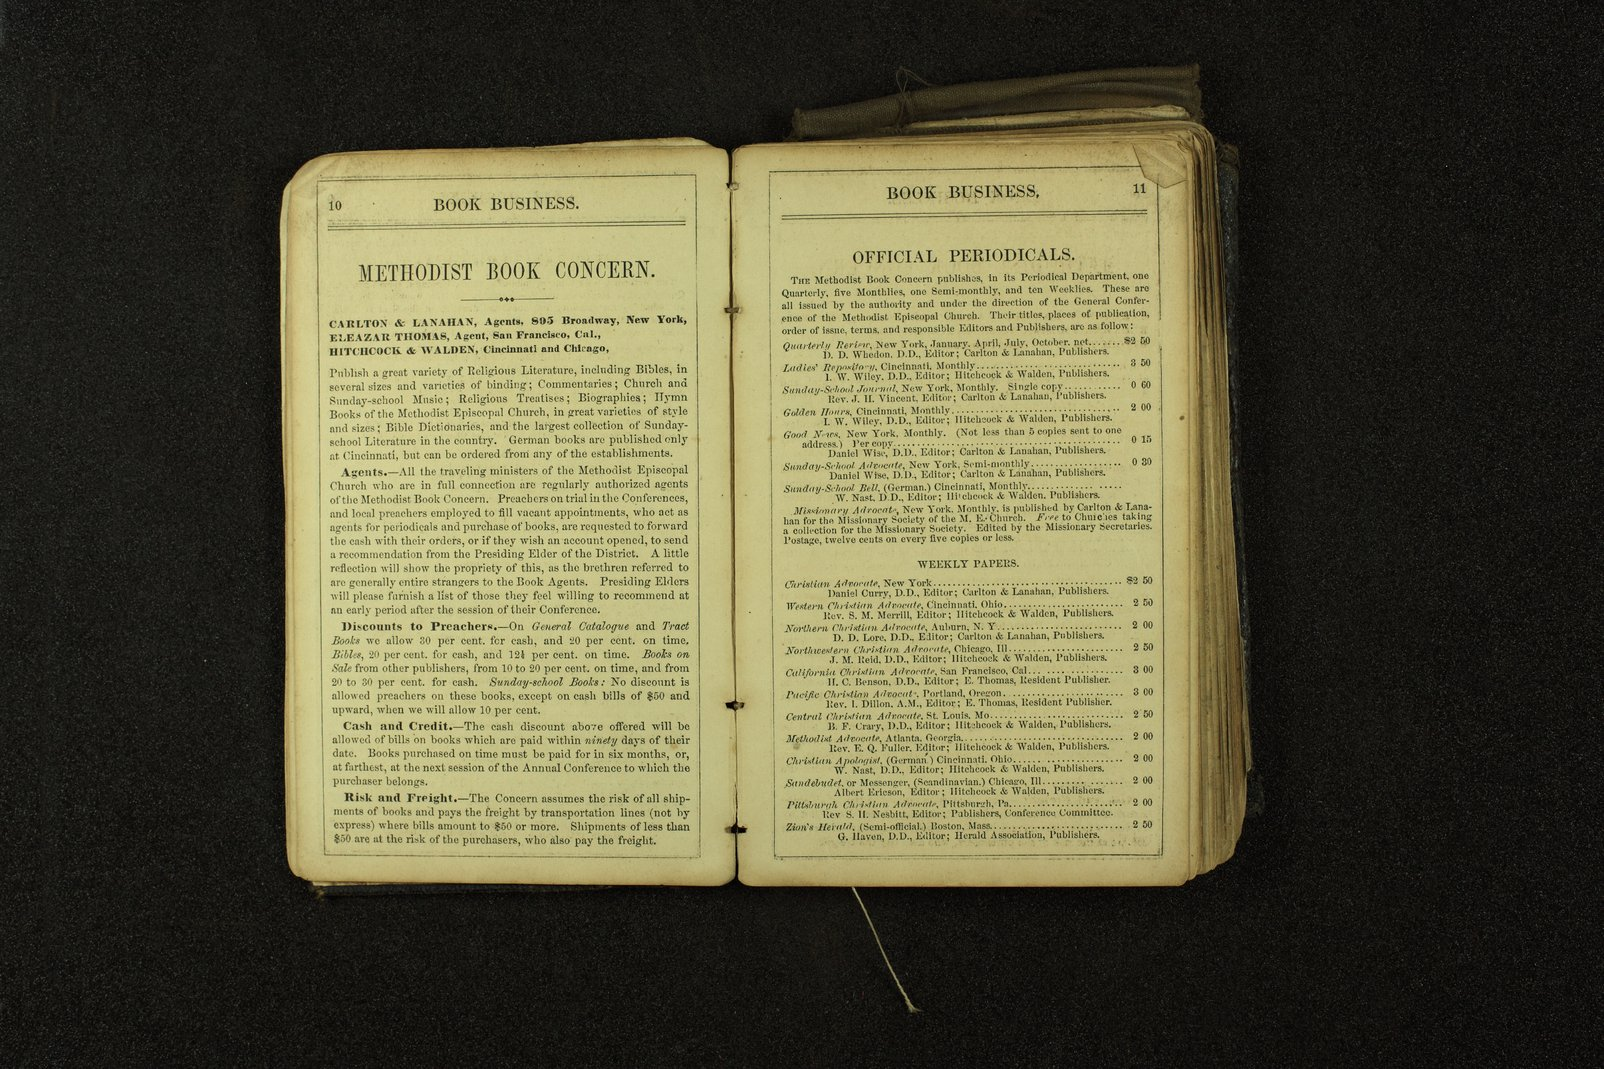 Clergyman's pocket diary and visiting book belonging to Boston Corbett - 10 & 11